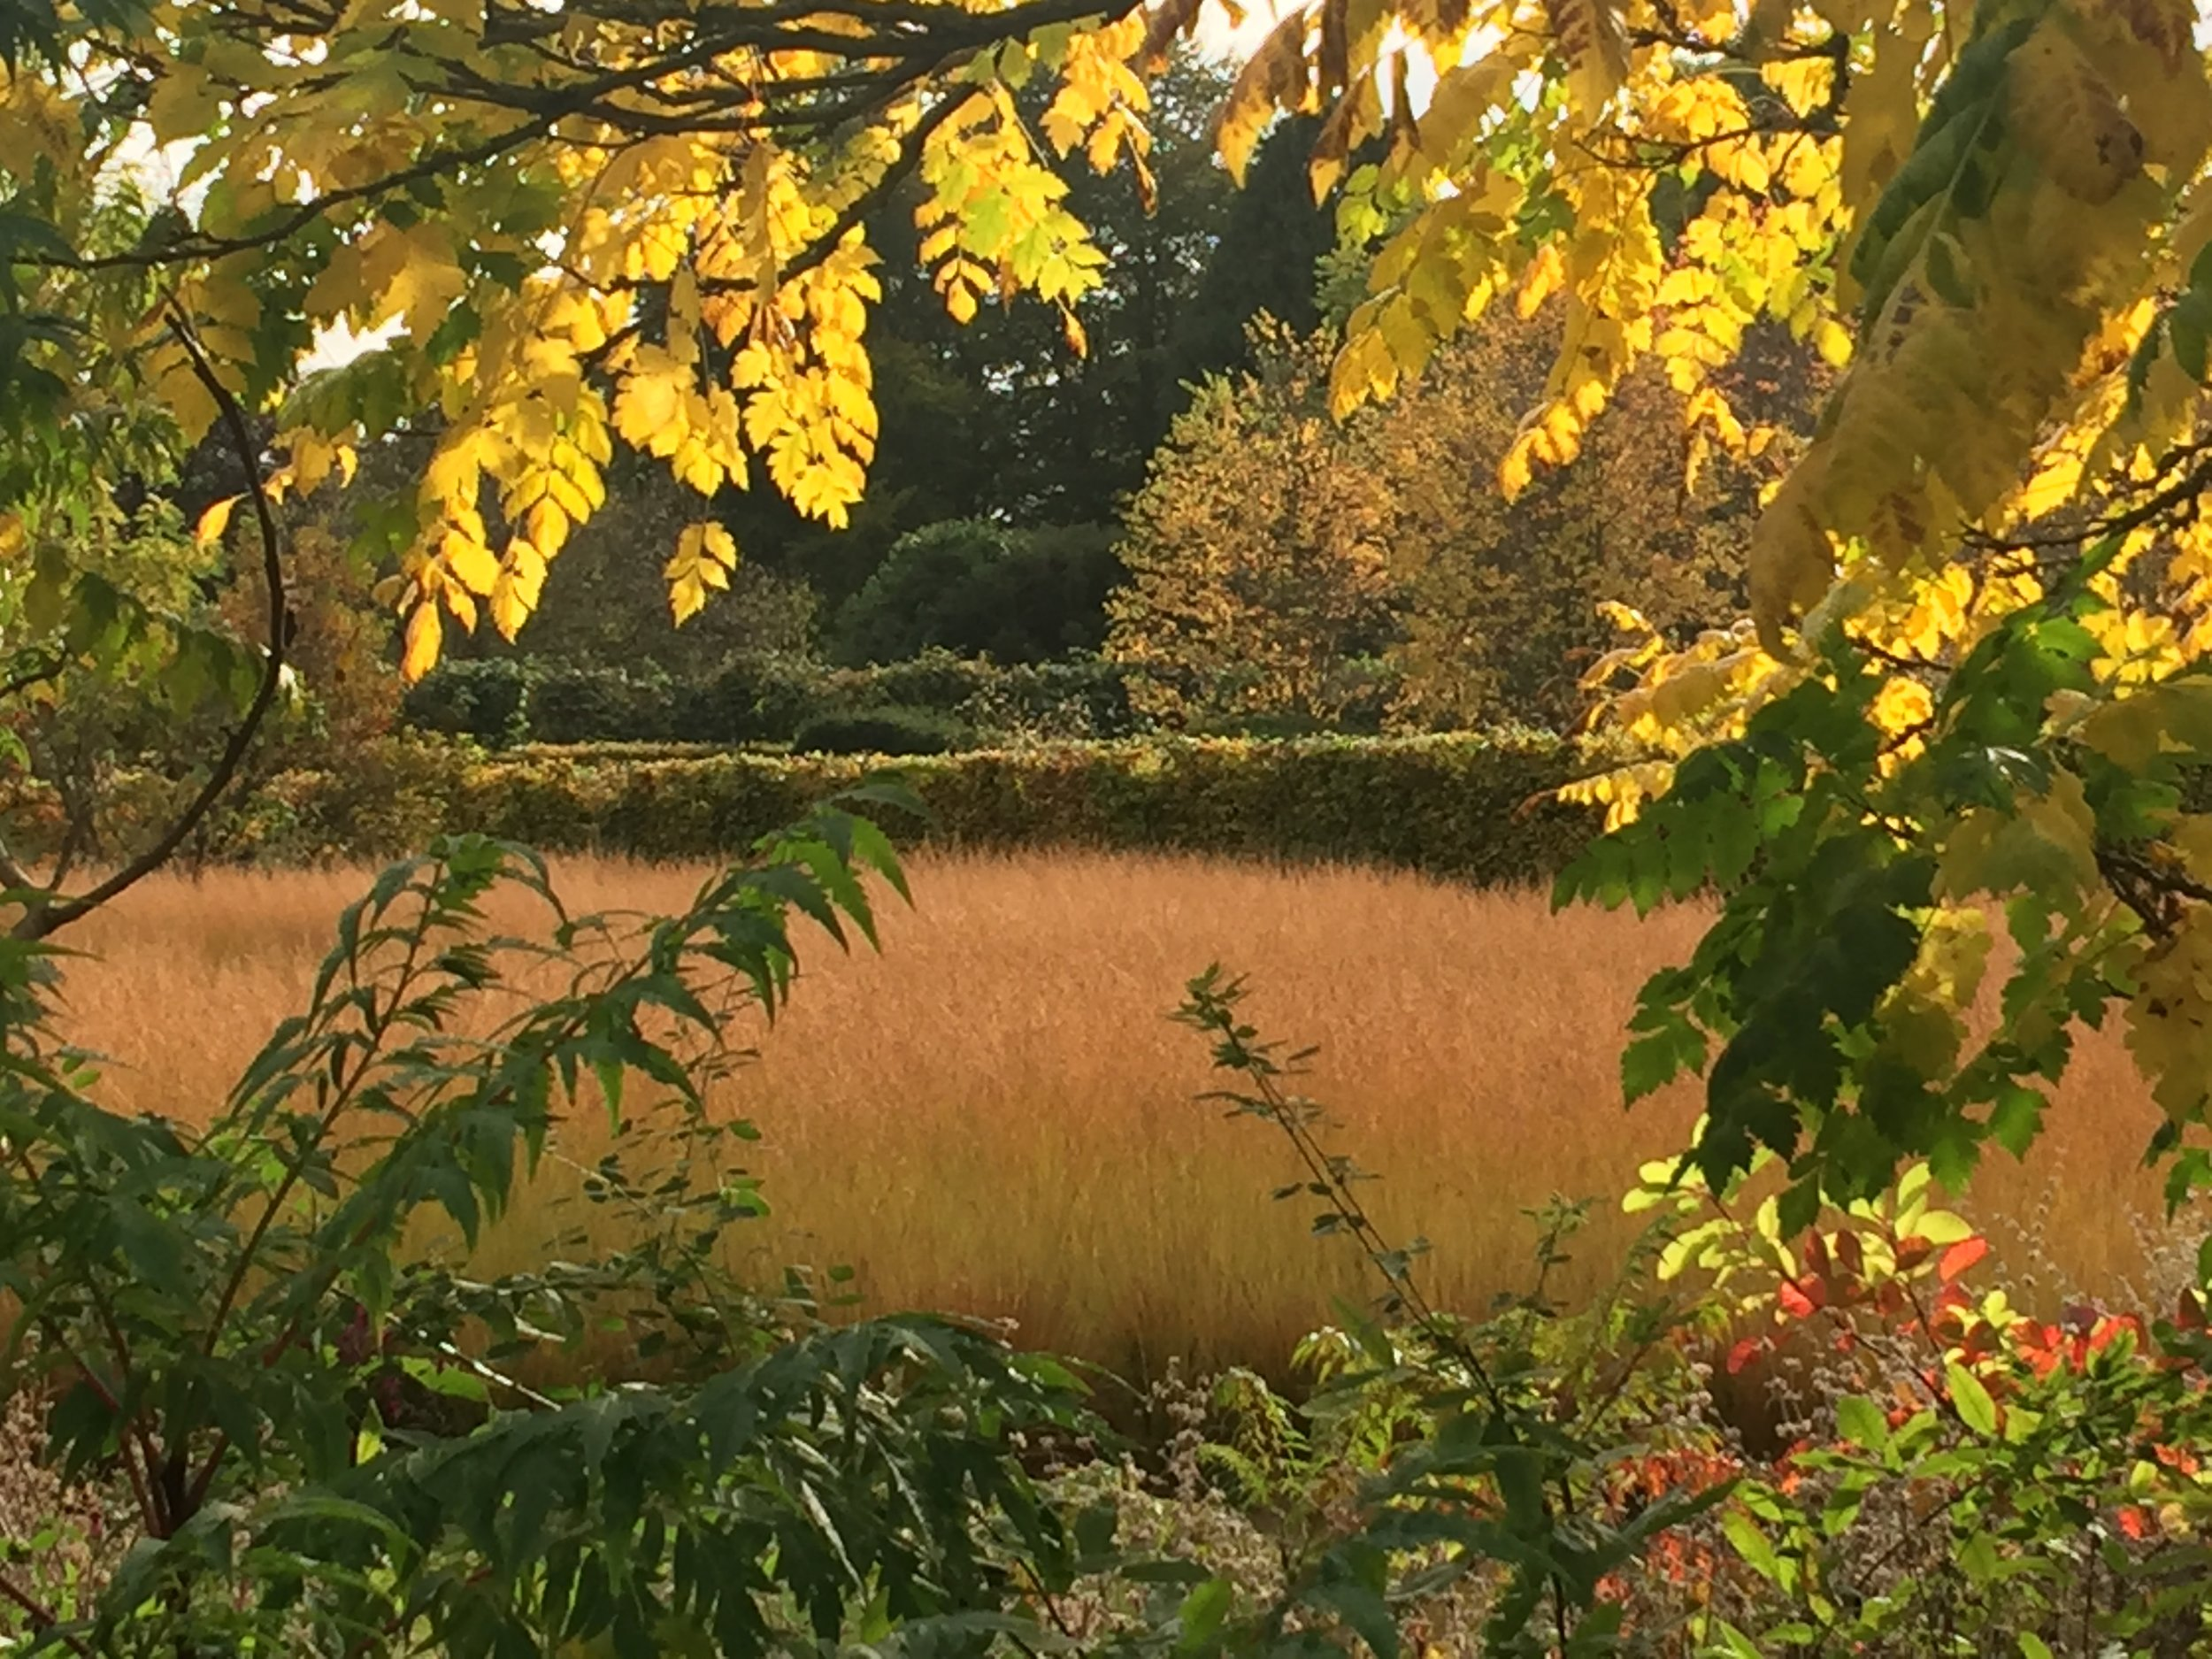 Oudolf planting at Scampston in October - dramatic and architectural